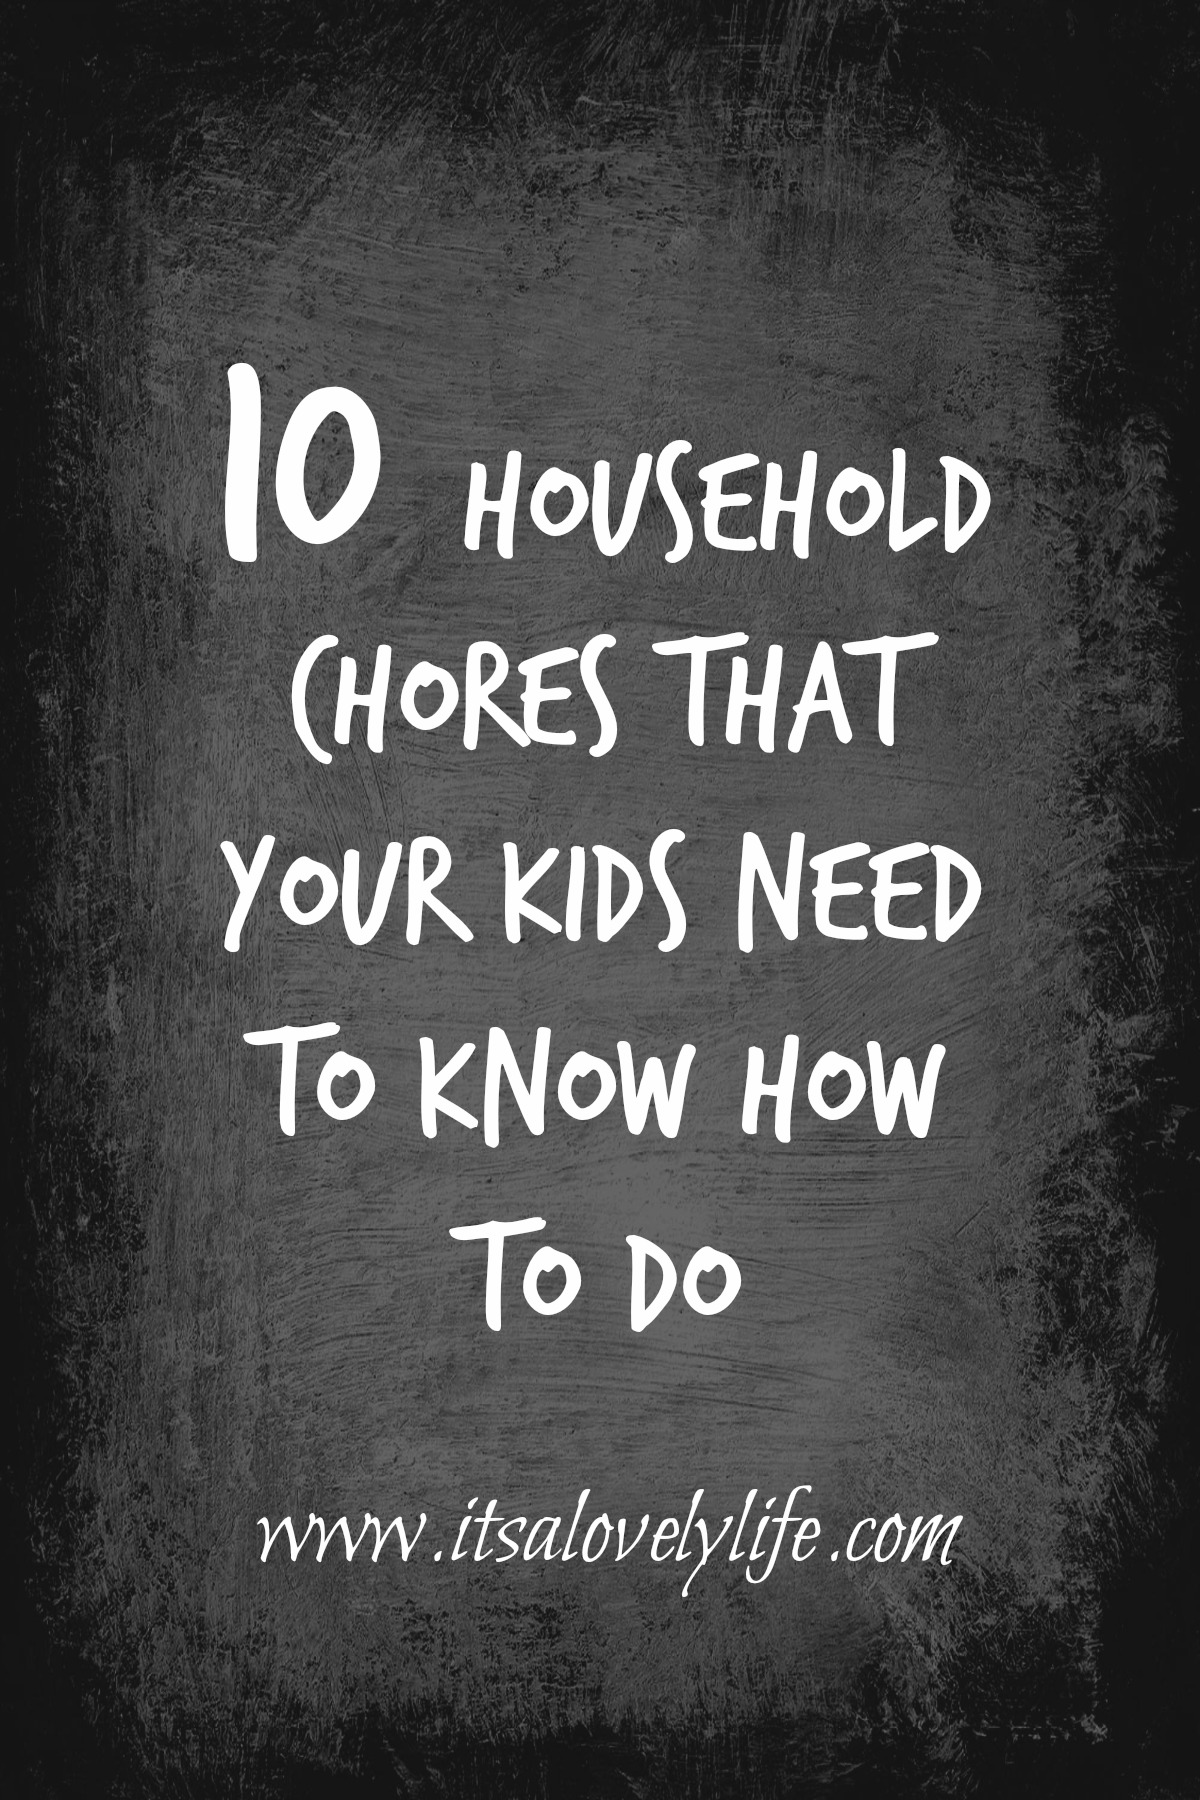 Chores your kids need to know how to do